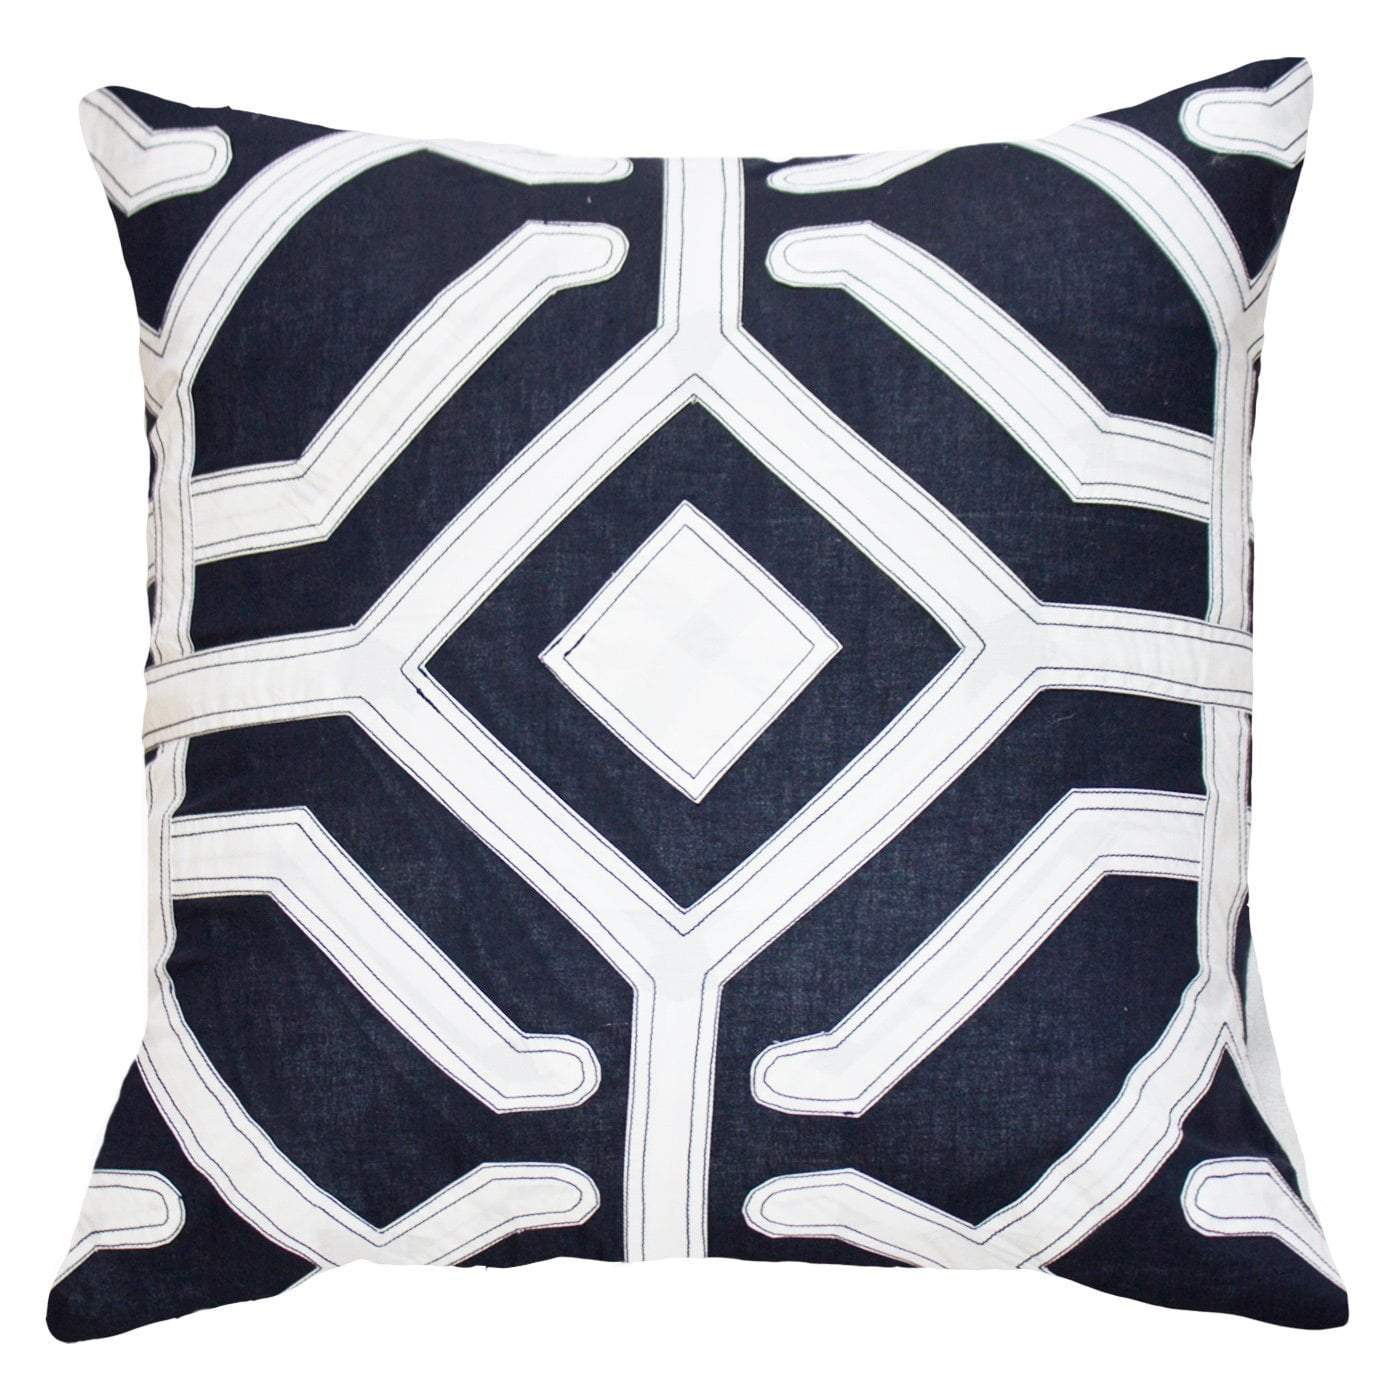 Bandhini Homewear Design Lounge Cushion Navy / 22 x 22 Moko Navy Lounge Cushion 55 x 55cm